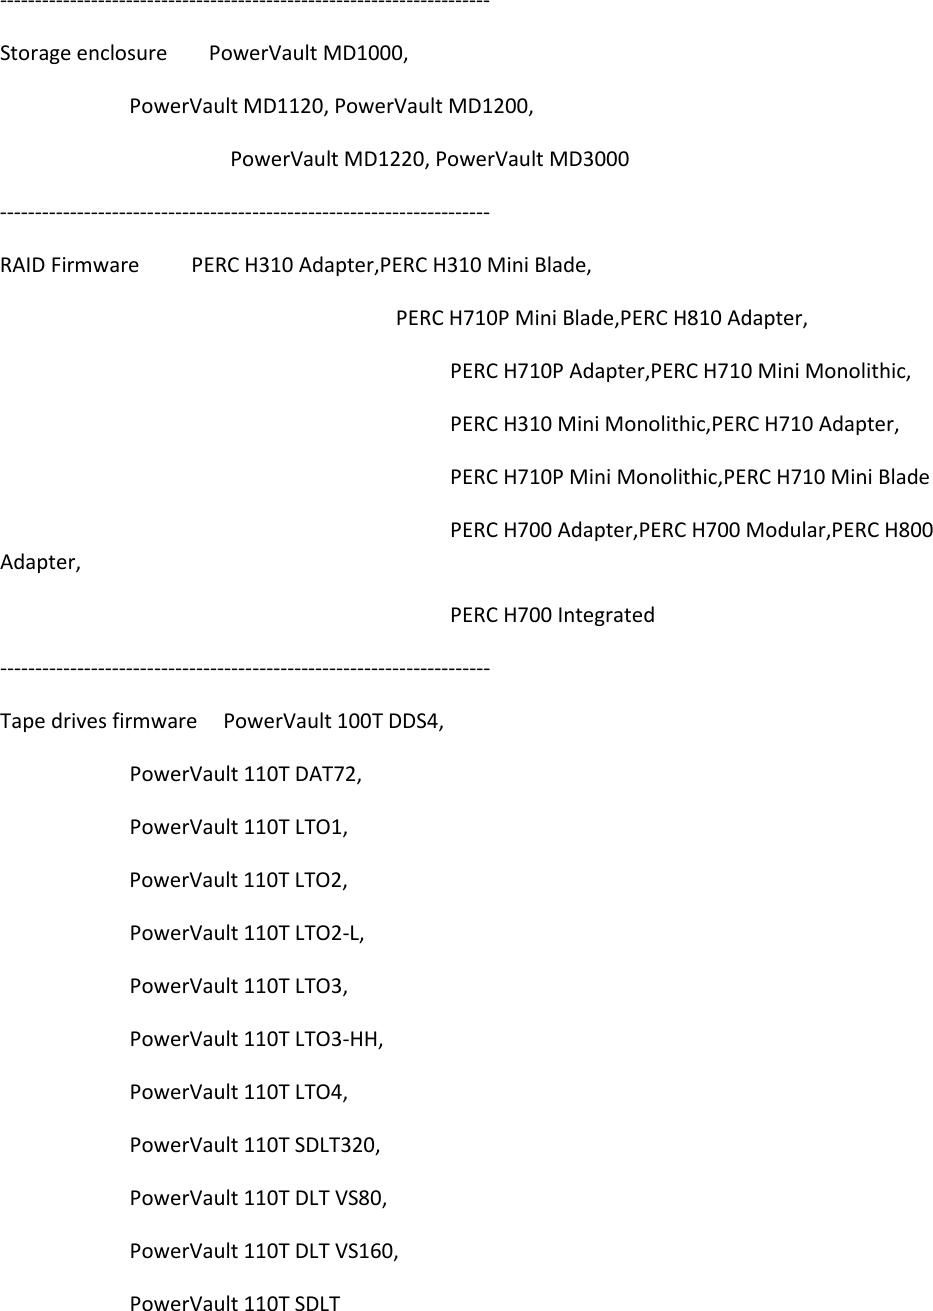 Dell Update Packages Version 7 2 Owners Manual 7 2 Release Notes